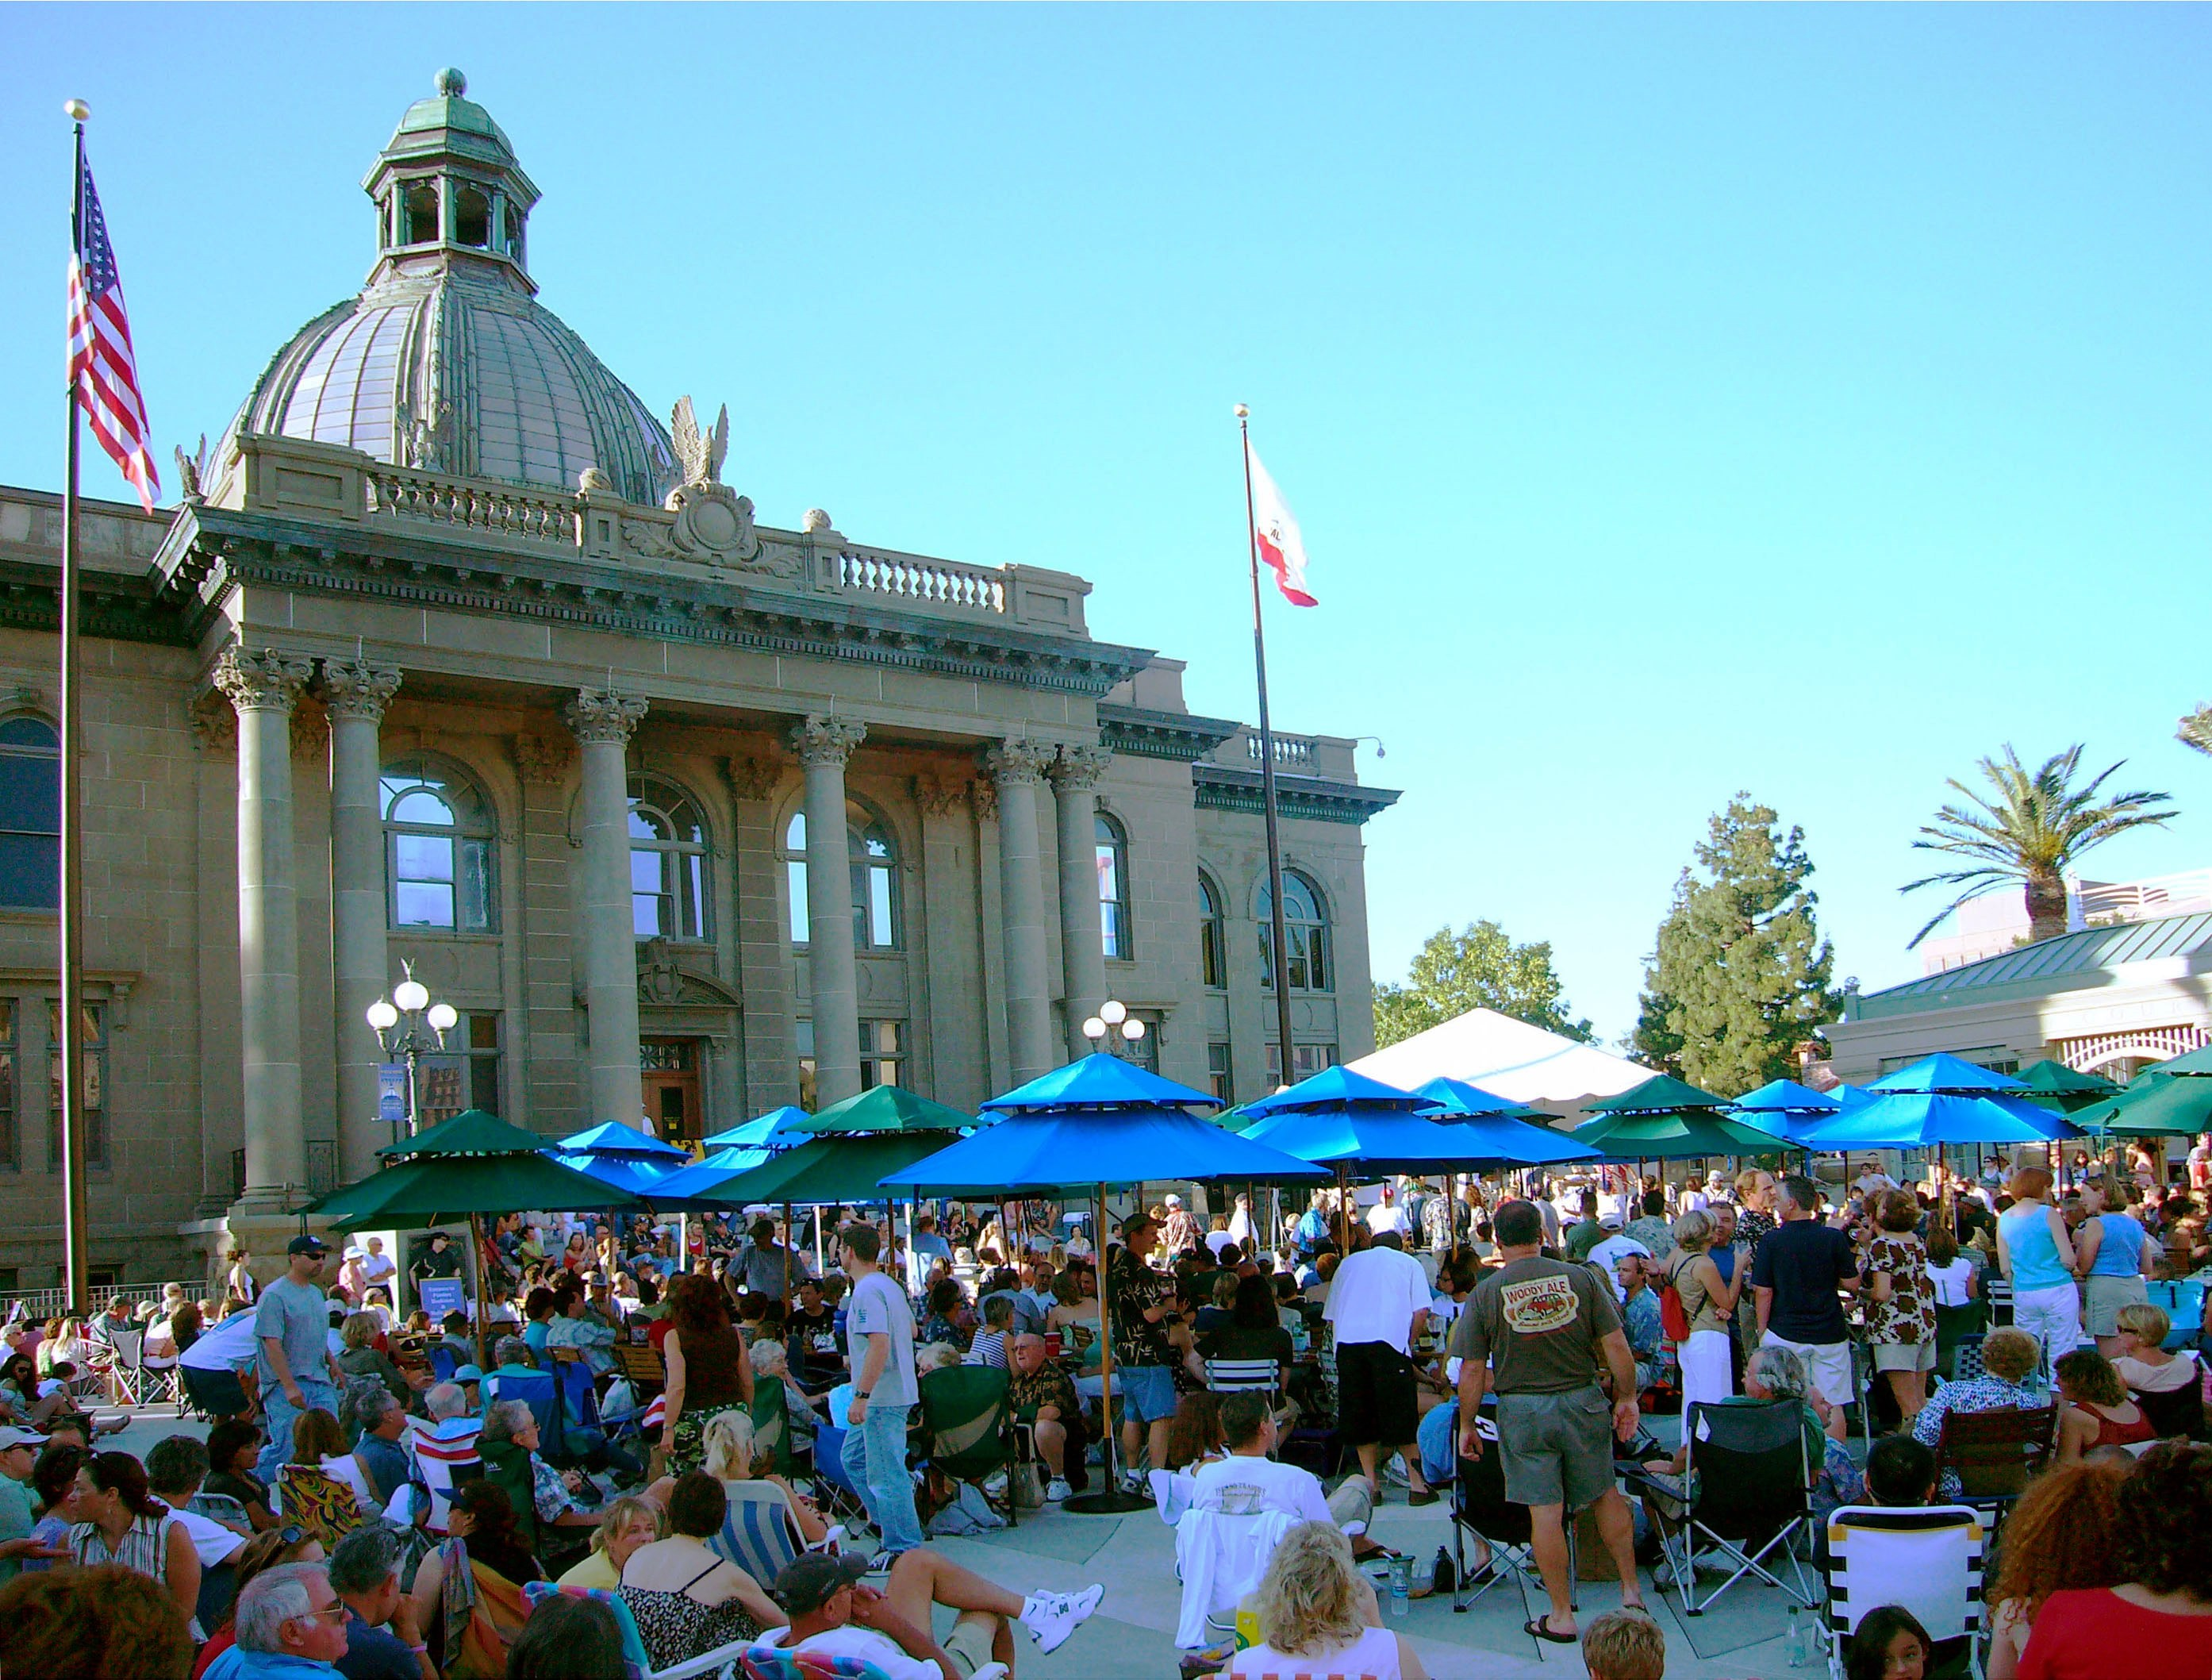 A crowd enjoys a concert in Redwood City's Courthouse Square. The Courthouse dates to 1910.